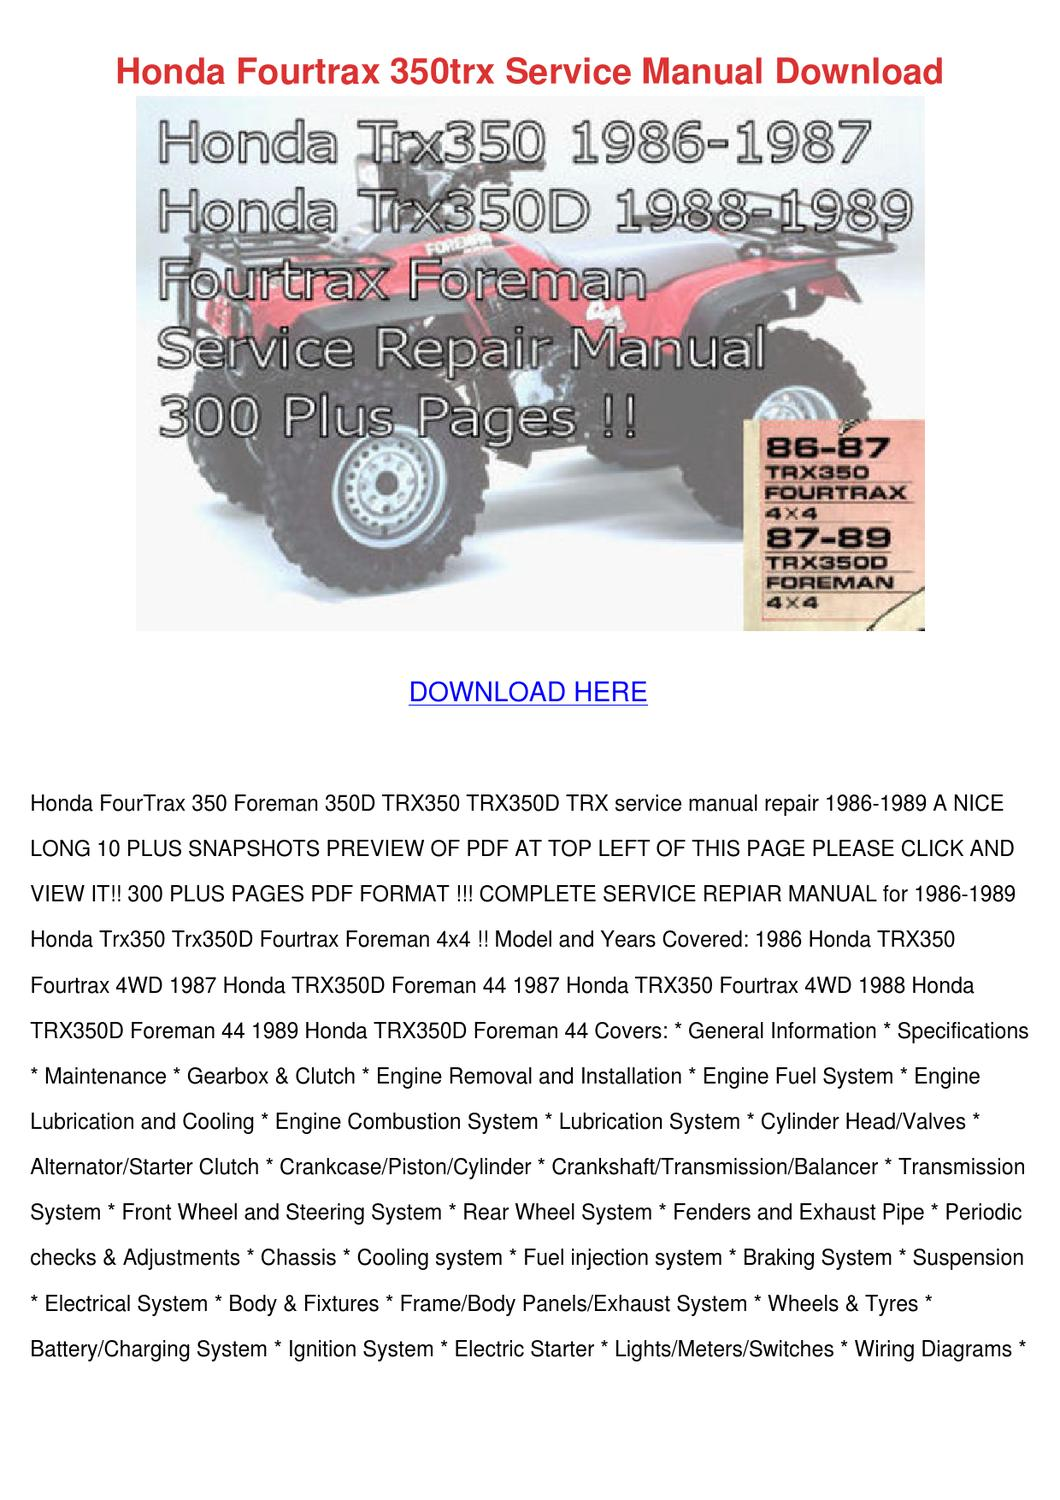 Honda Fourtrax 350trx Service Manual Download By Alise Neveu Issuu